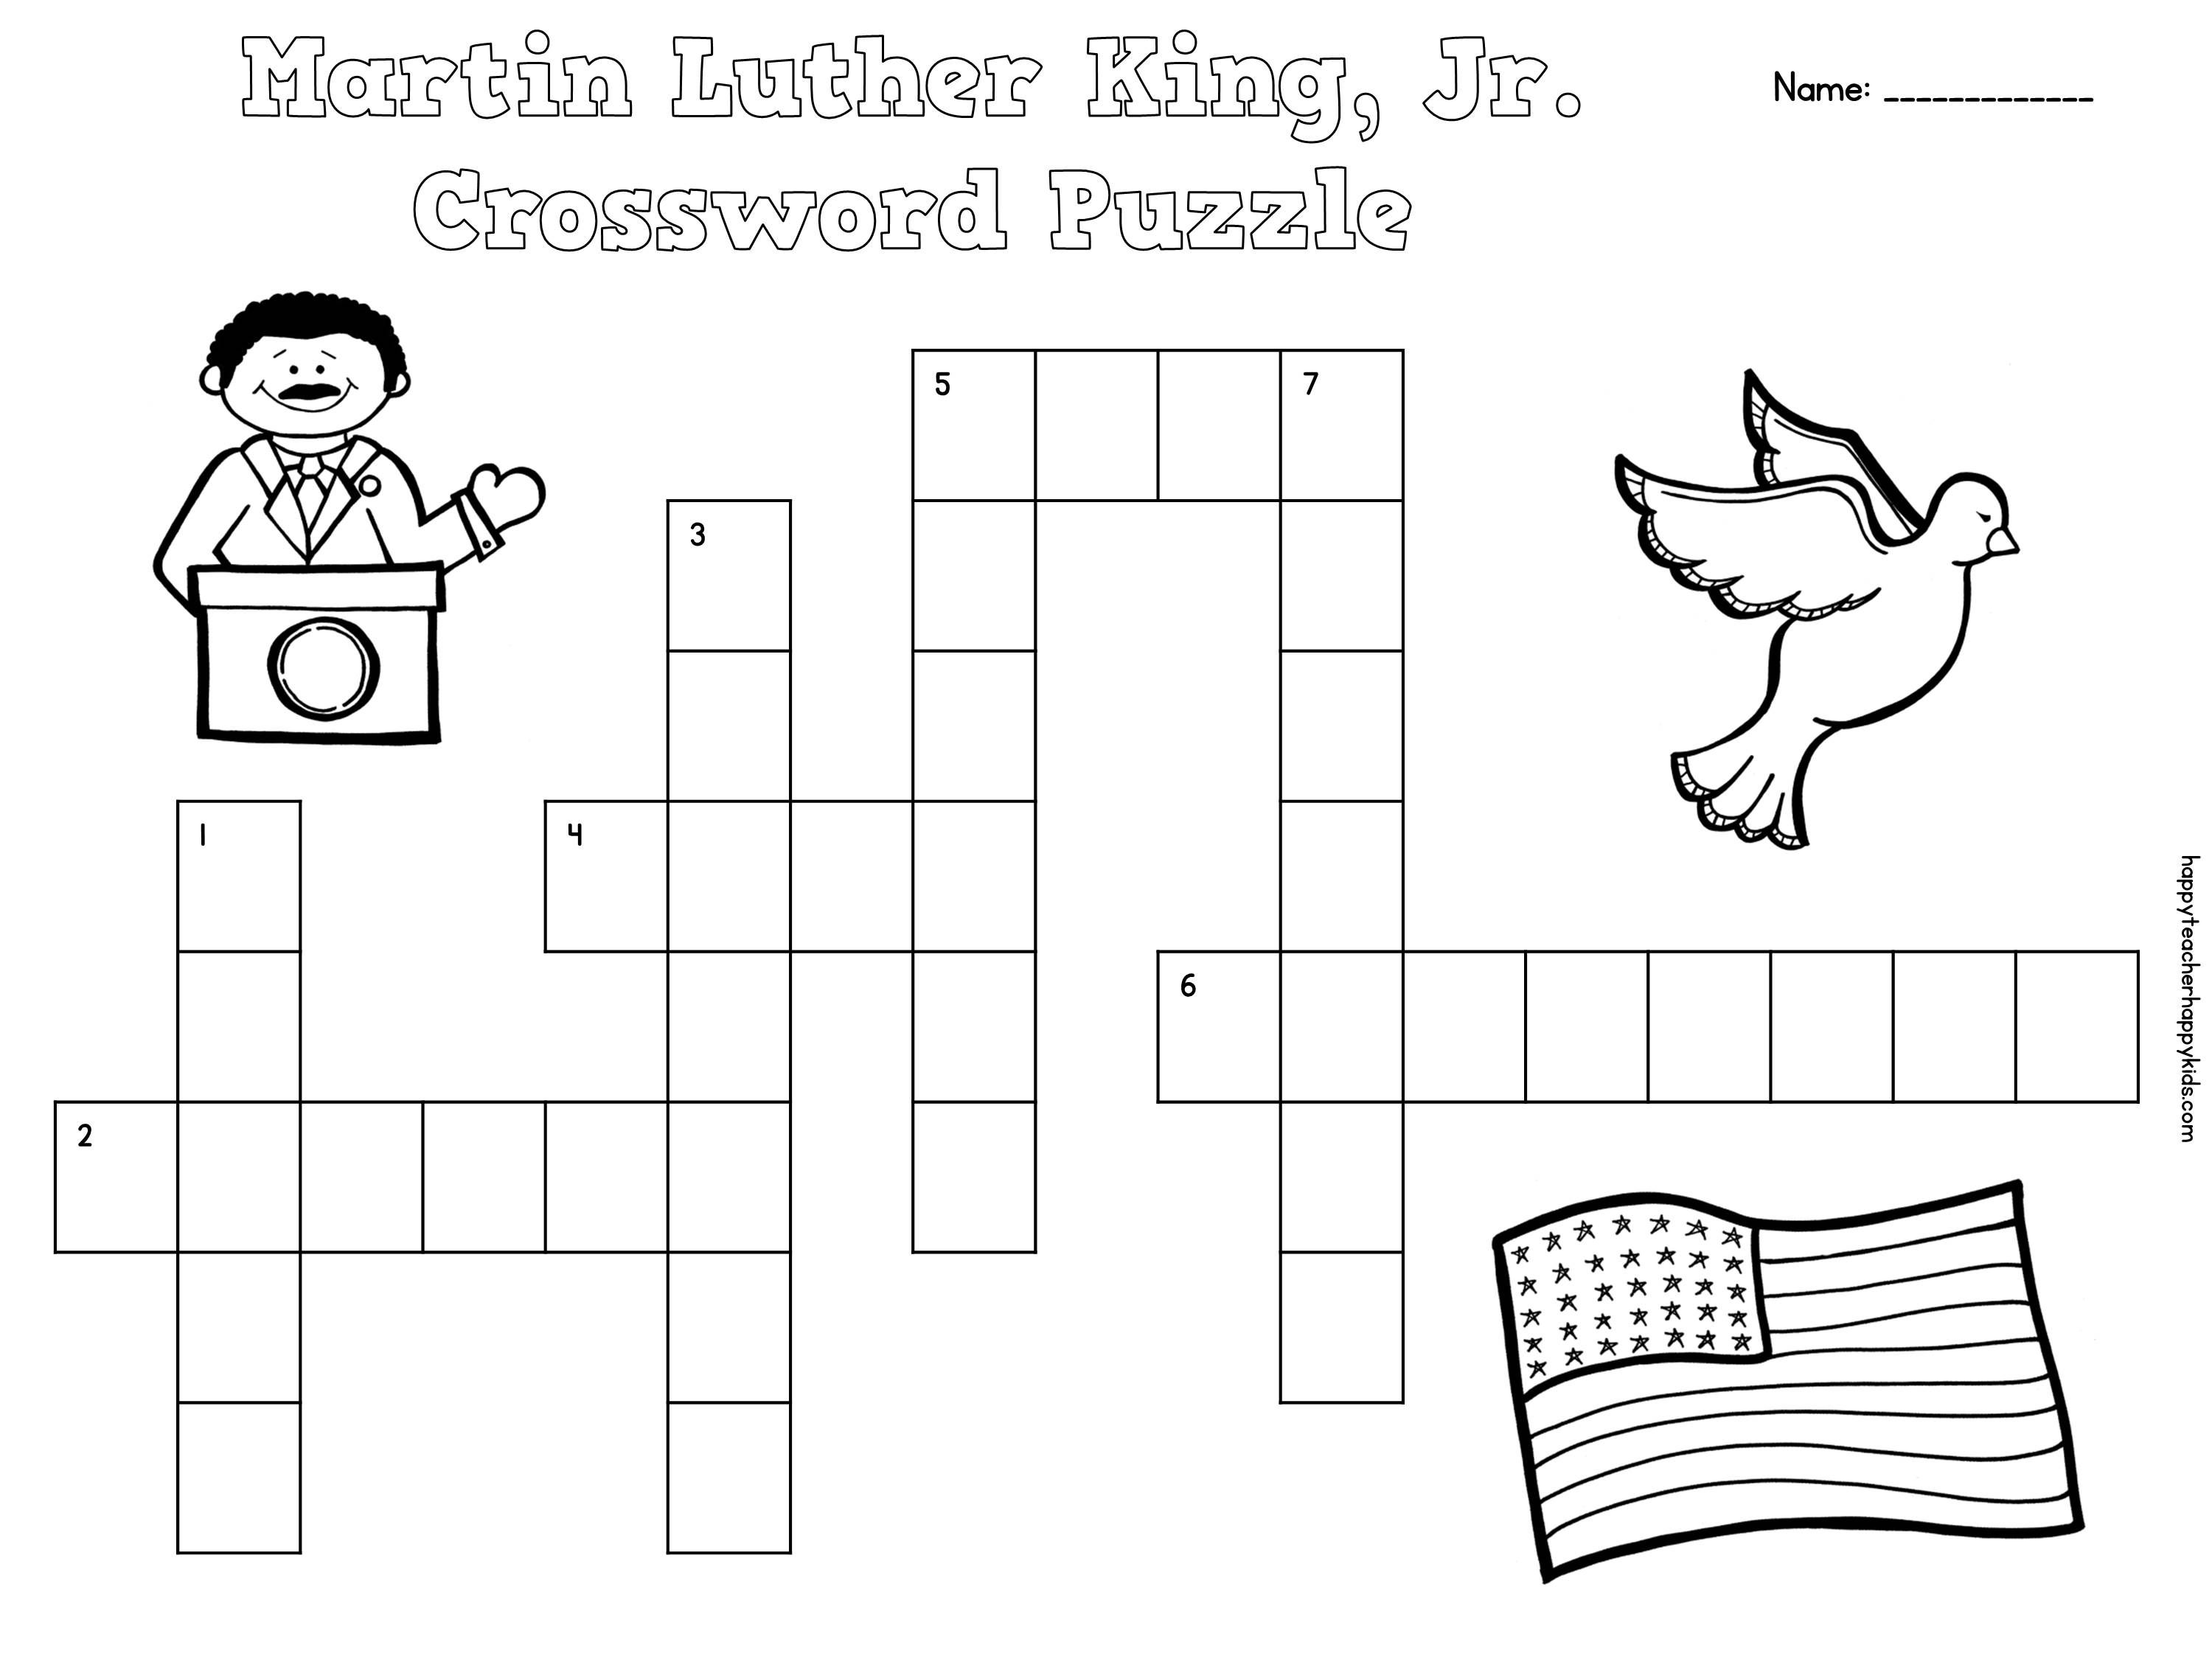 Free Martin Luther King Jr Crossword Puzzles For Primary